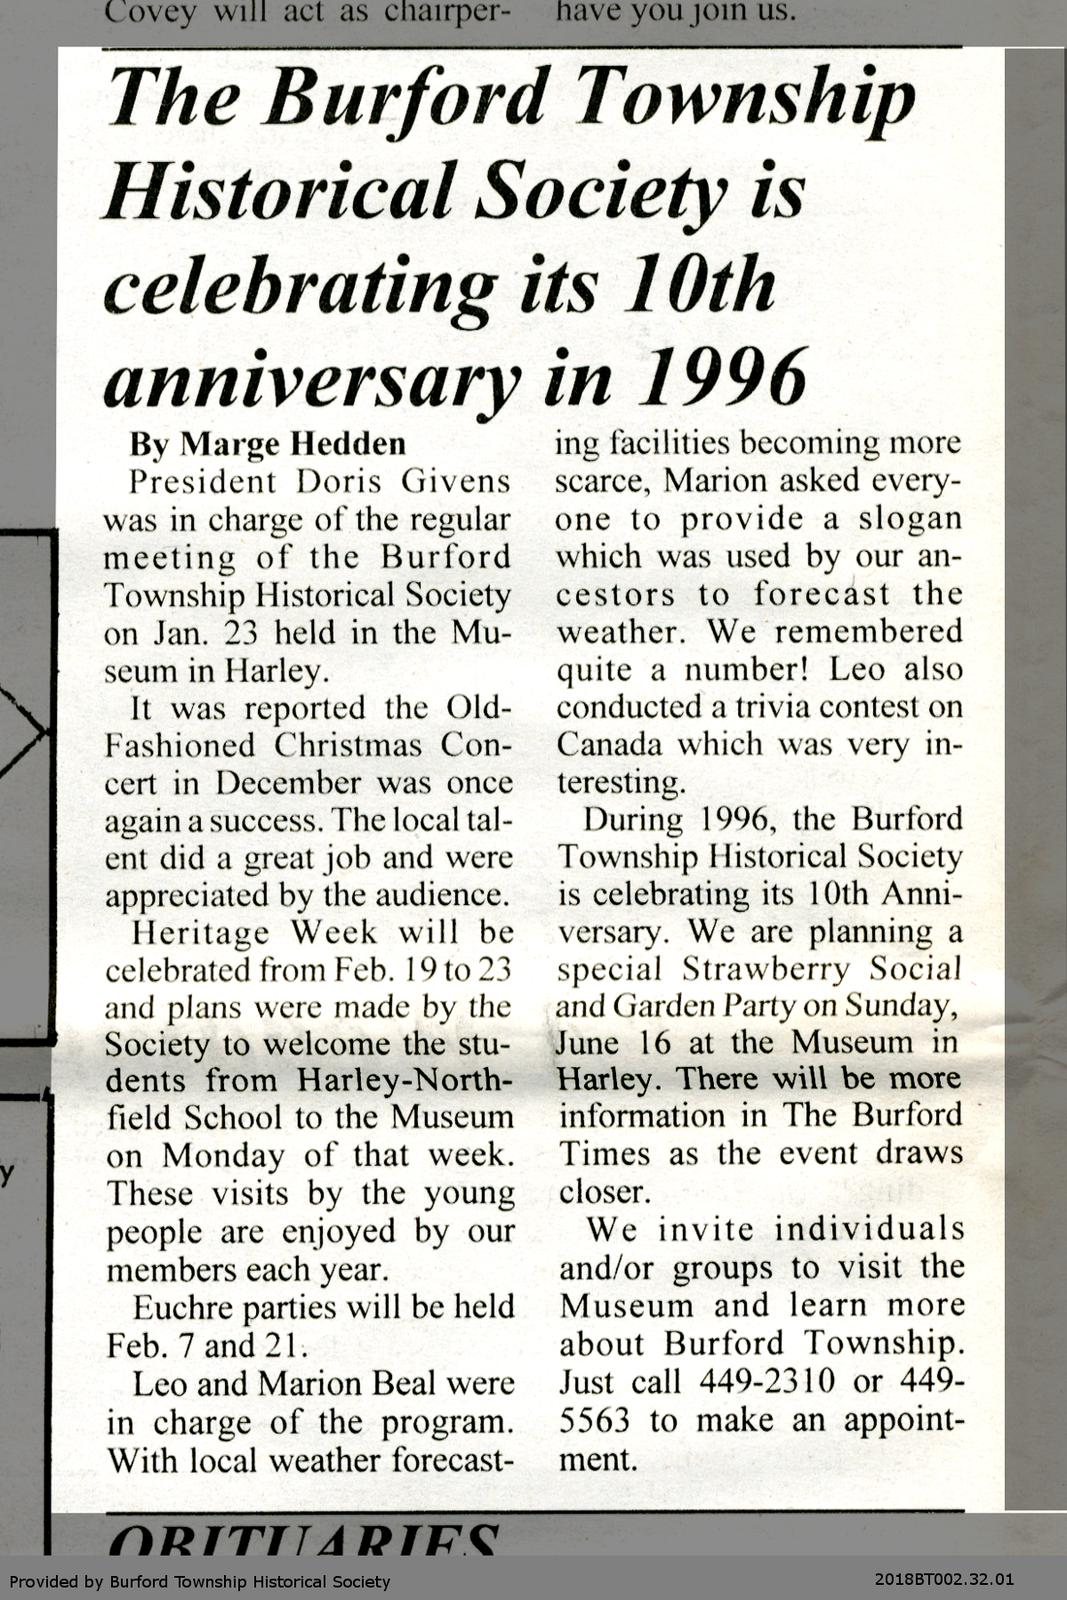 The Burford Township Historical Society is celebrating its 10th anniversary in 1996